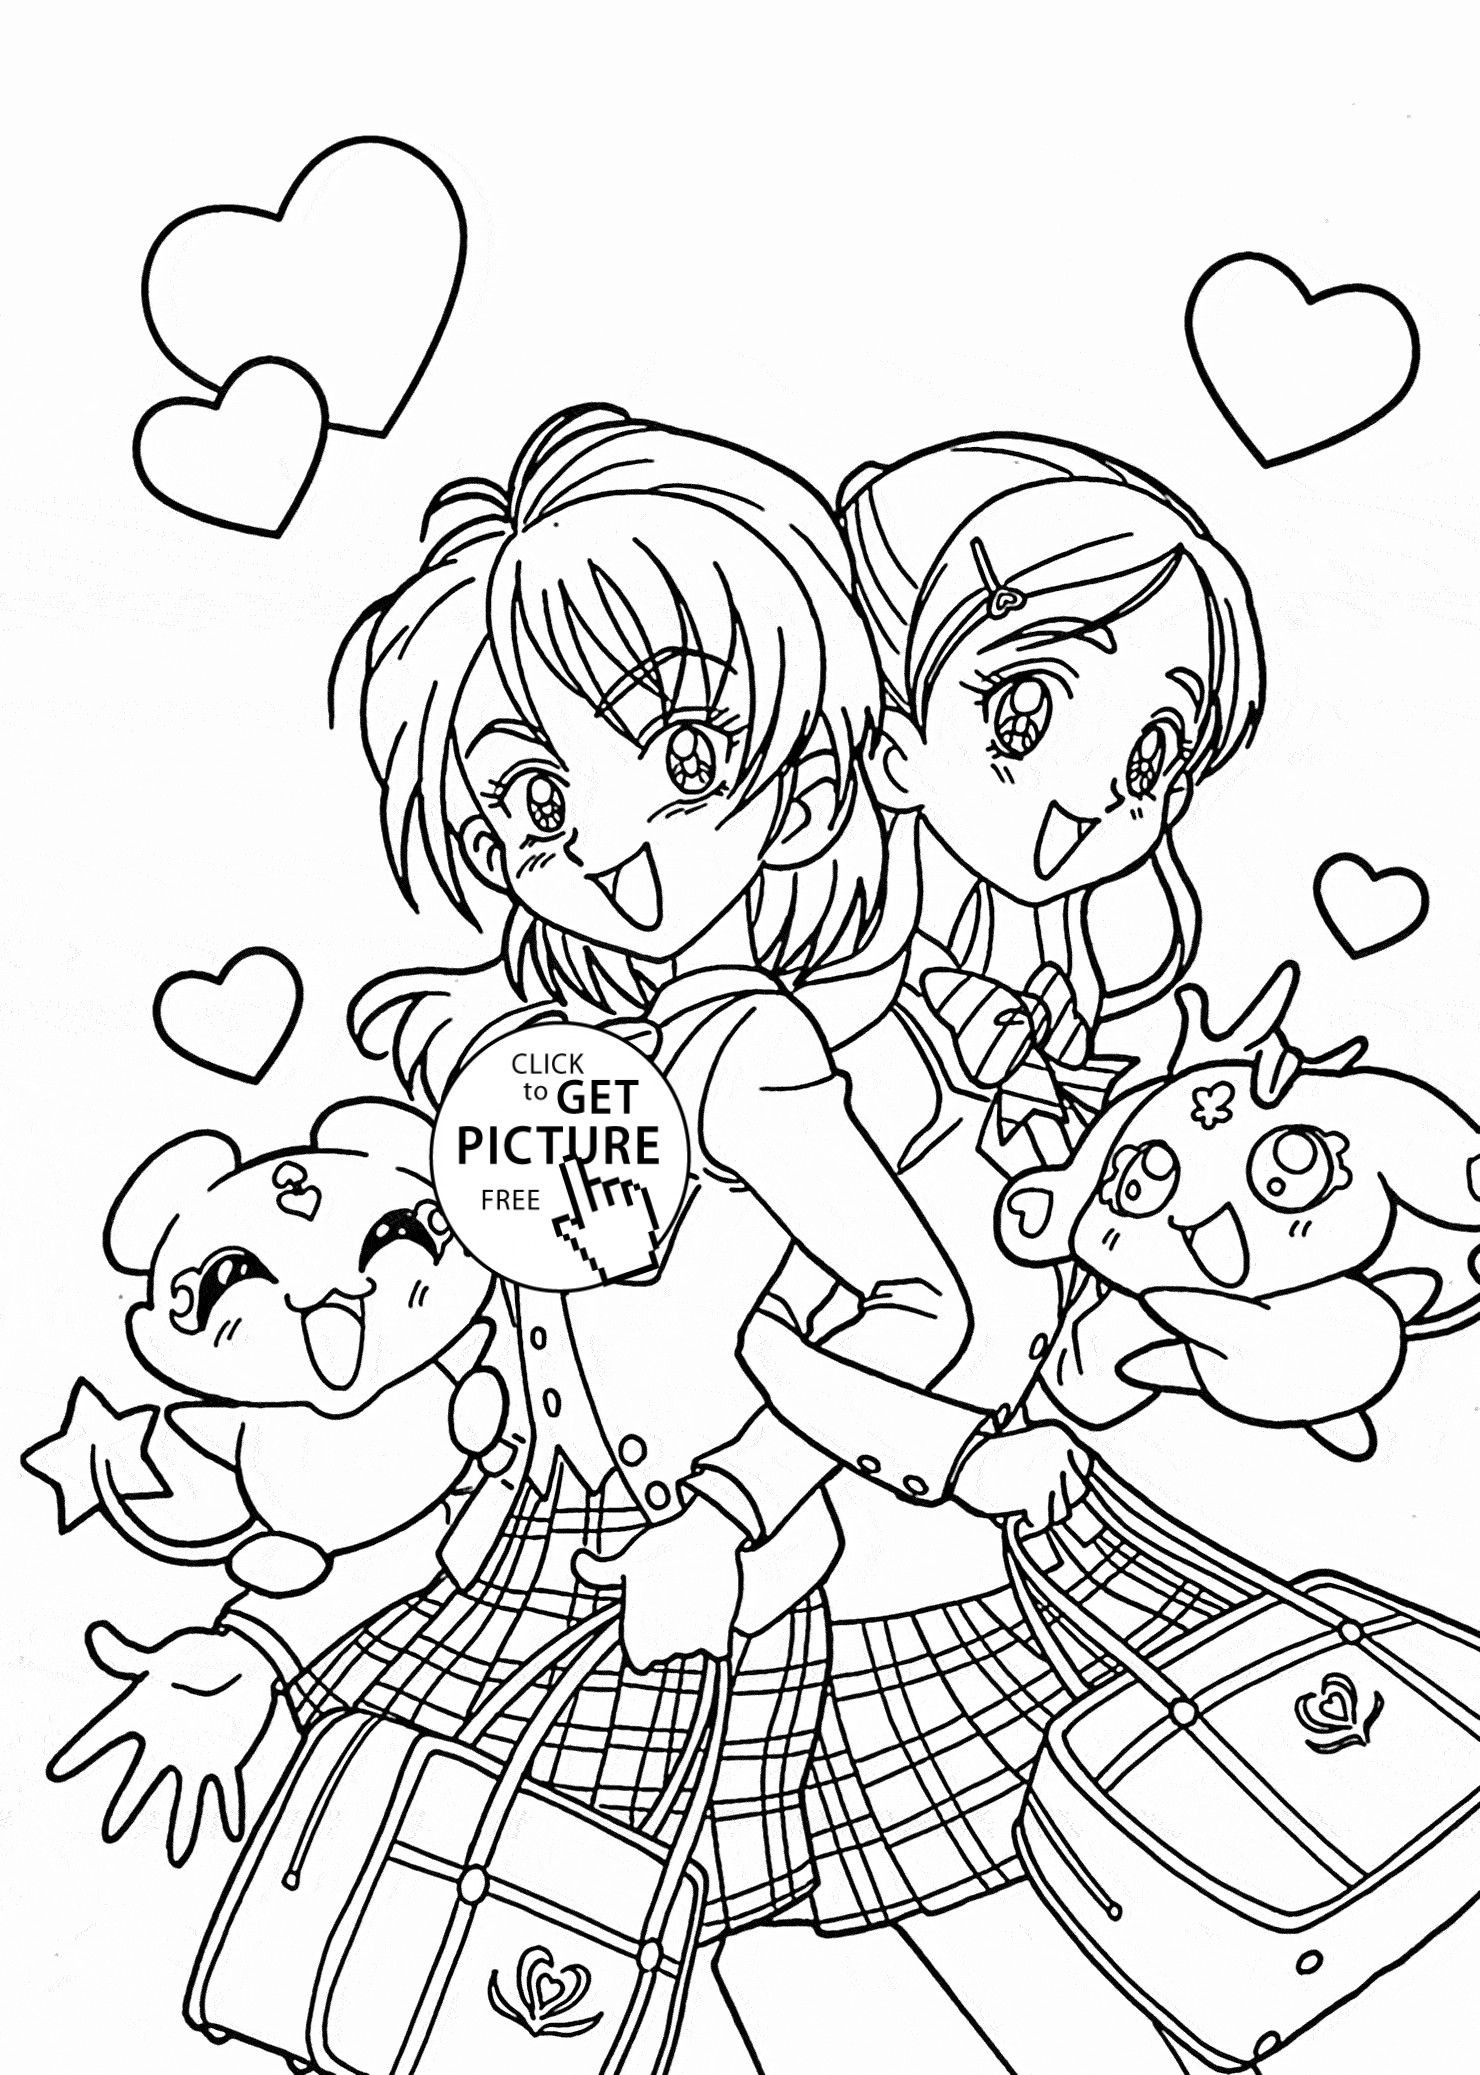 23 Ideas For Coloring Pages For Adults Anime Best Coloring Pages Inspiration And Ideas Cute Coloring Pages Coloring Pages For Girls Chibi Coloring Pages [ 2075 x 1480 Pixel ]